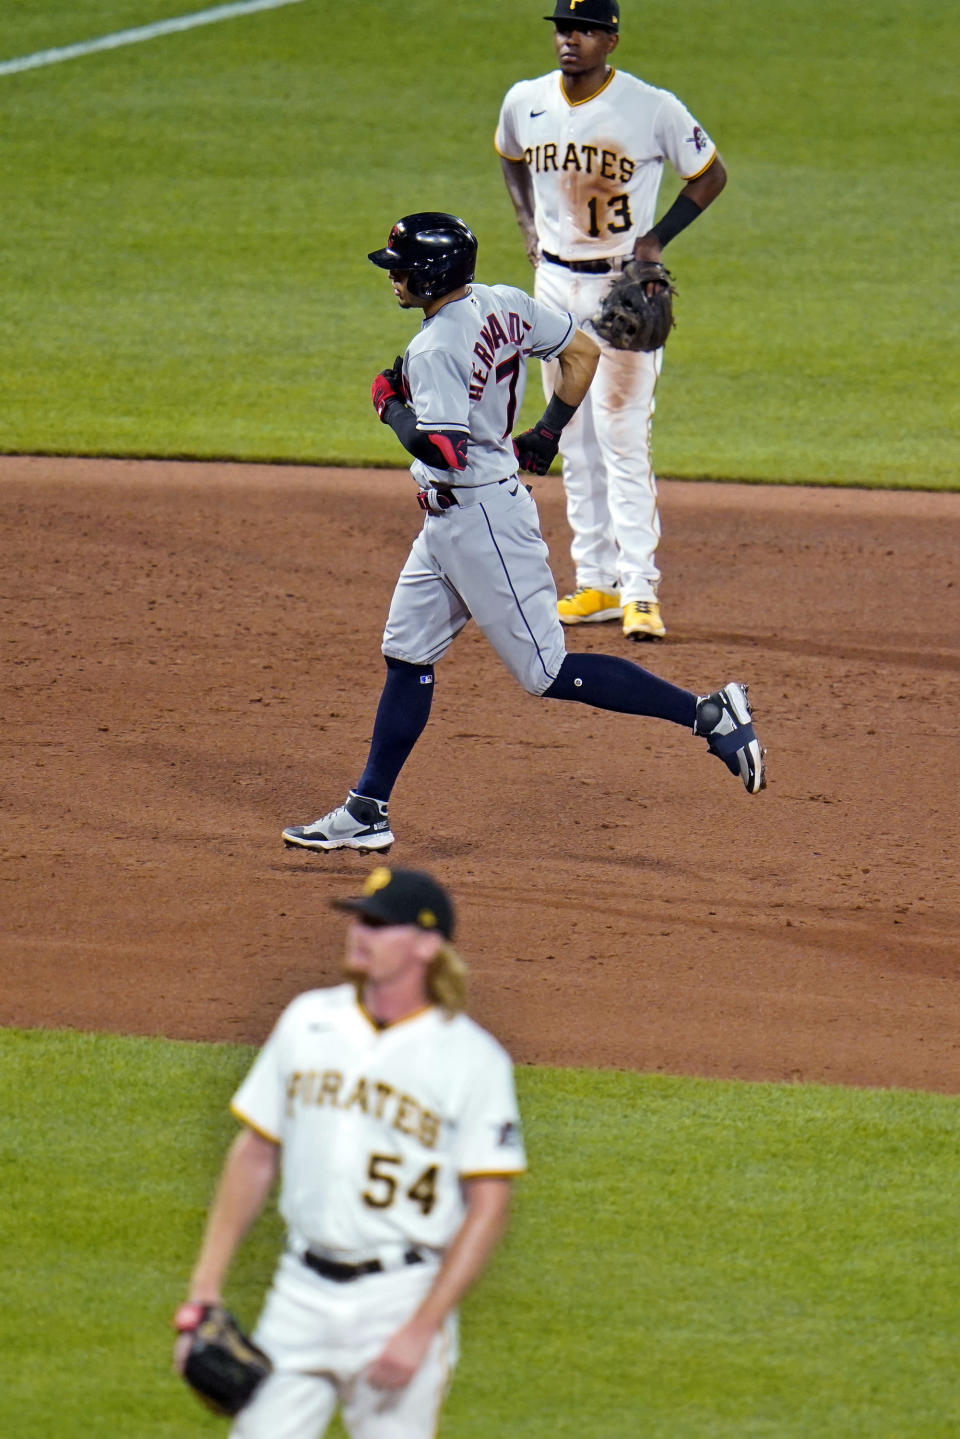 Cleveland Indians' Cesar Hernandez (7) runs the bases after hitting a grand slam off Pittsburgh Pirates relief pitcher Sam Howard (54) during the seventh inning of a baseball game in Pittsburgh, Friday, June 18, 2021. (AP Photo/Gene J. Puskar)